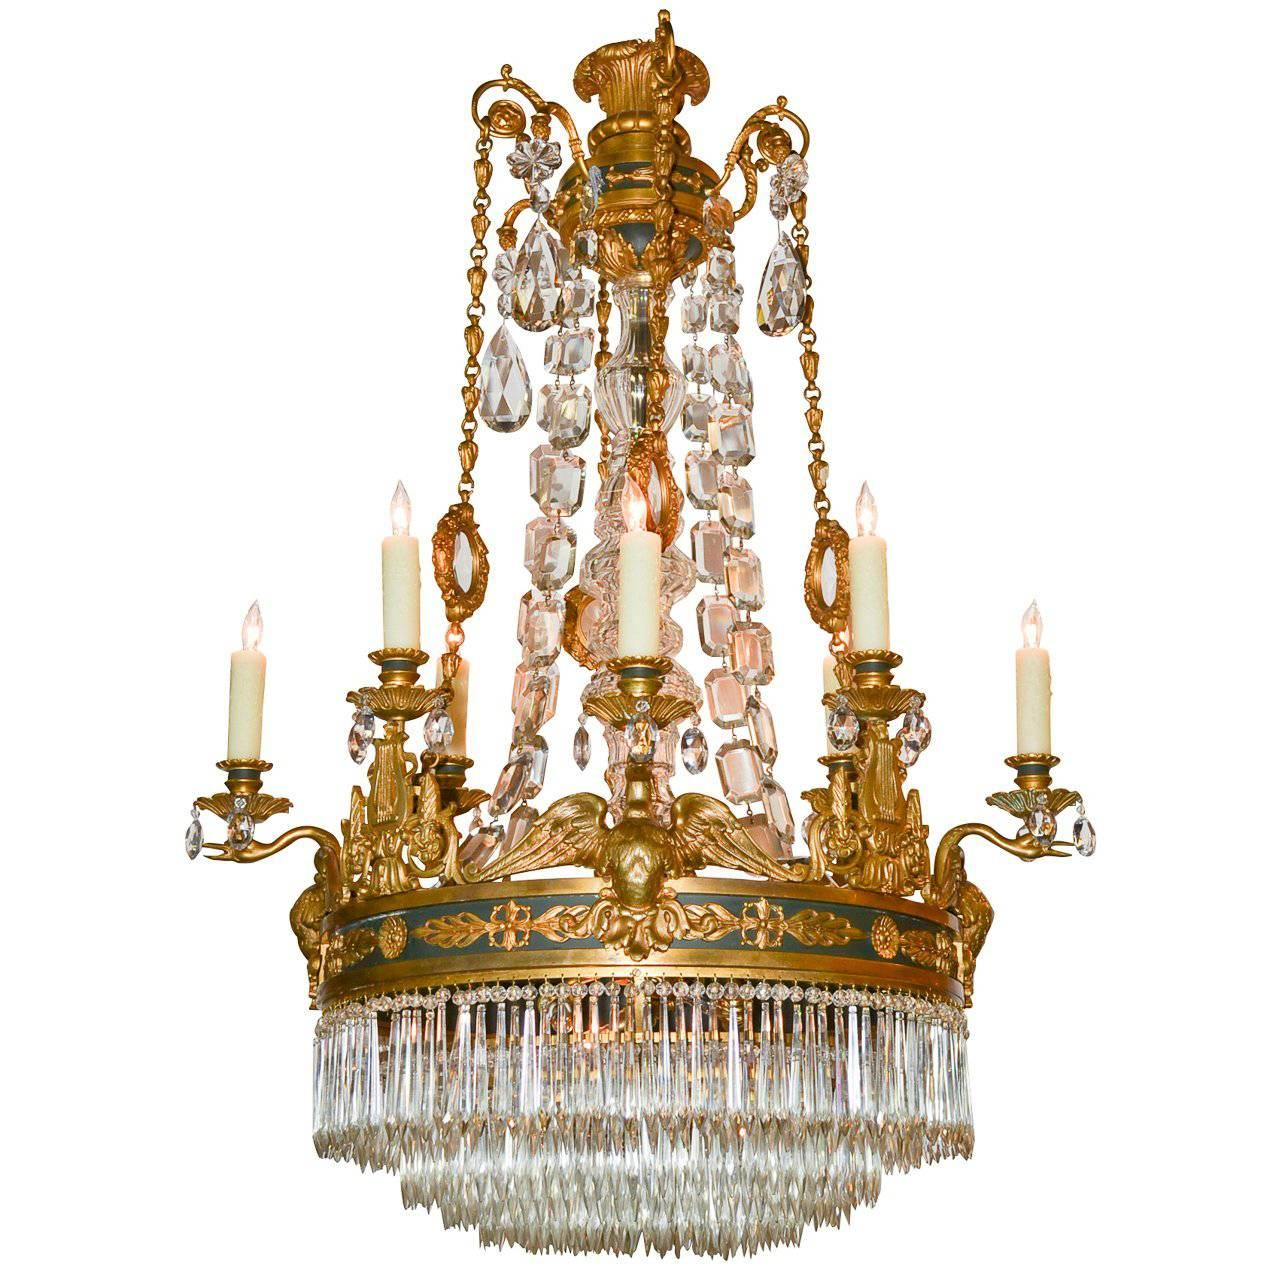 19th century empire chandelier for sale at 1stdibs aloadofball